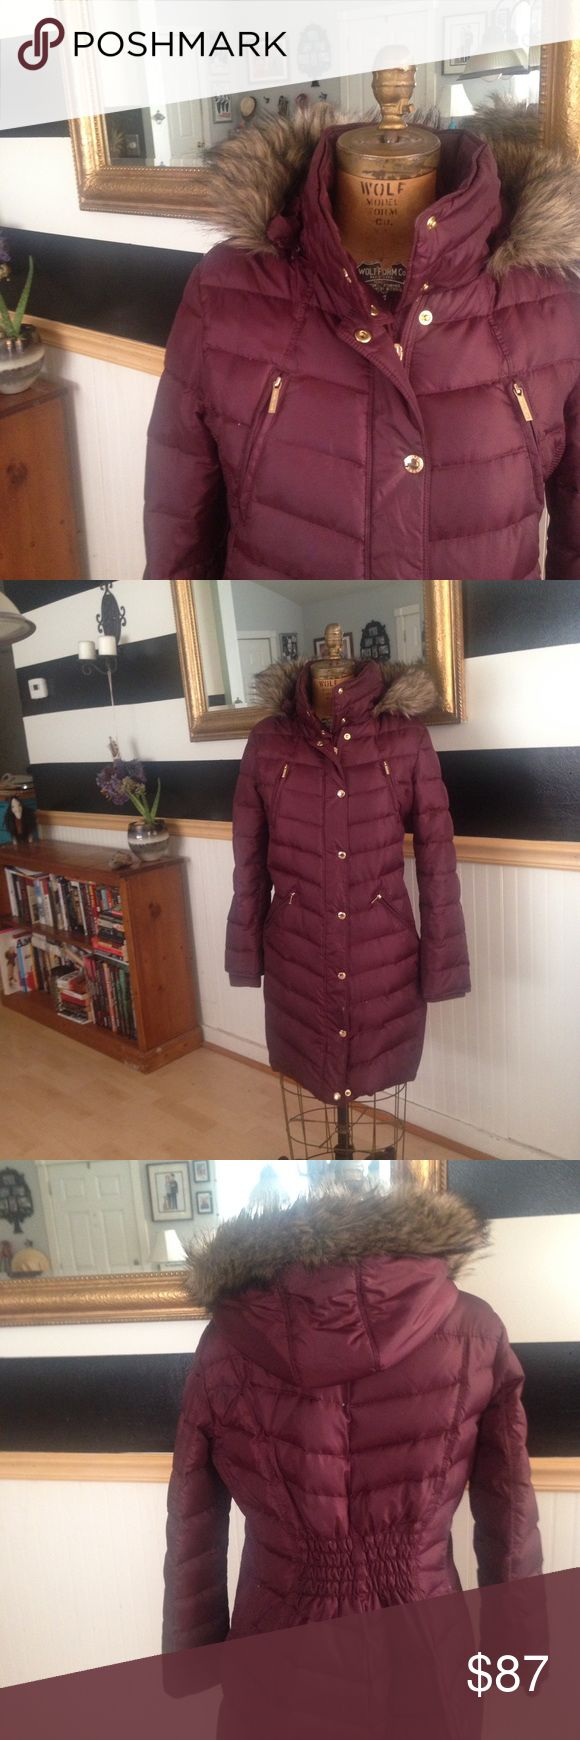 Burgundy Michael Kors puffer coat Long down puffer coat with both Zip and button closure. Removable fur-lined hood. Excellent condition. MICHAEL Michael Kors Jackets & Coats Puffers